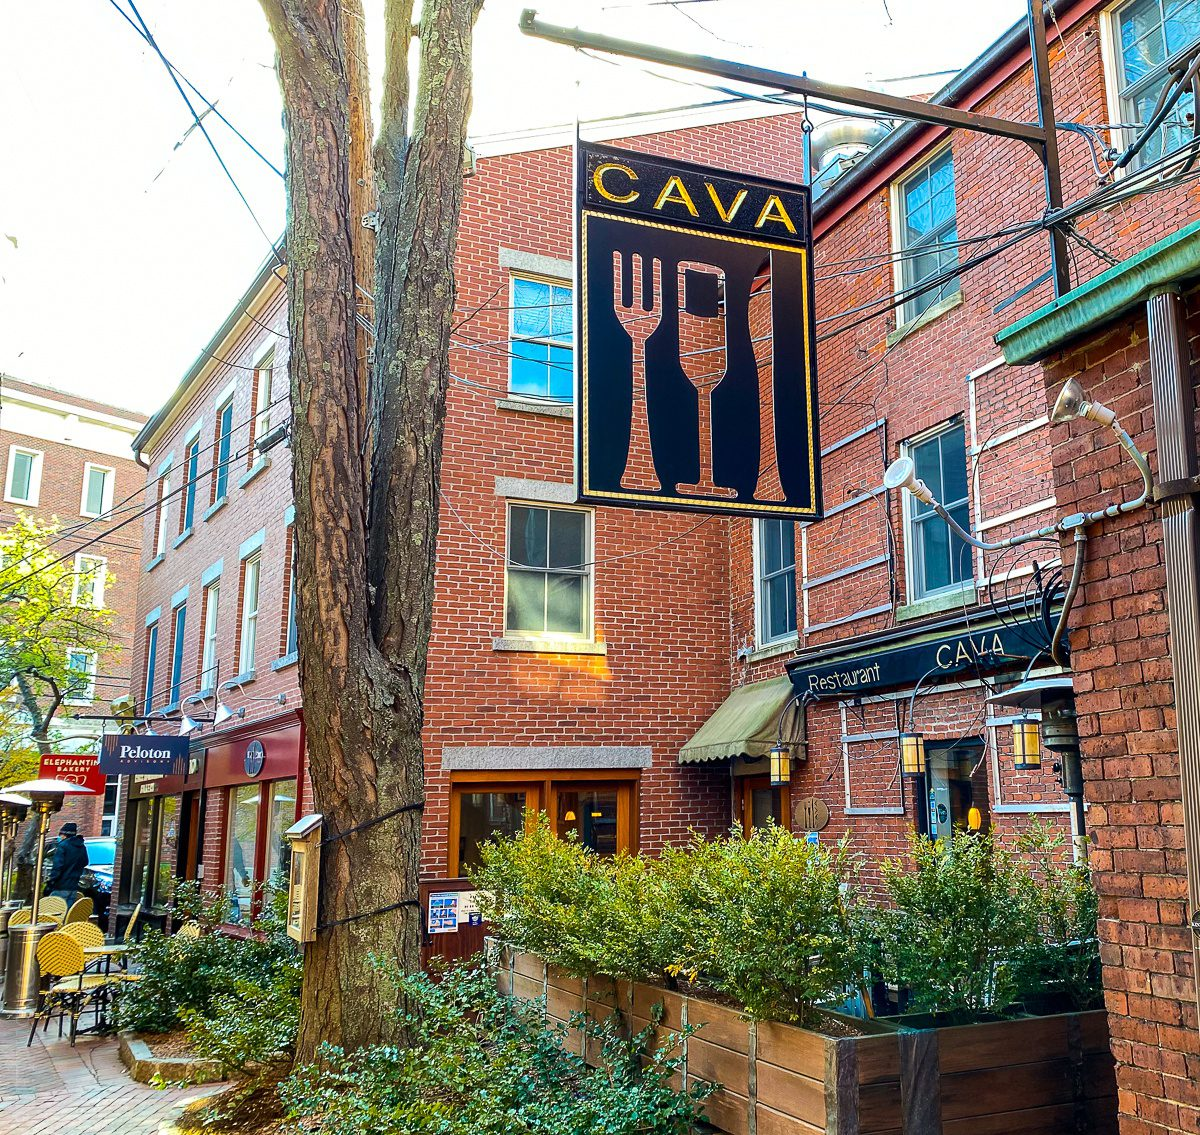 The outdoor dining patio of Cava, Portsmouth, NH.